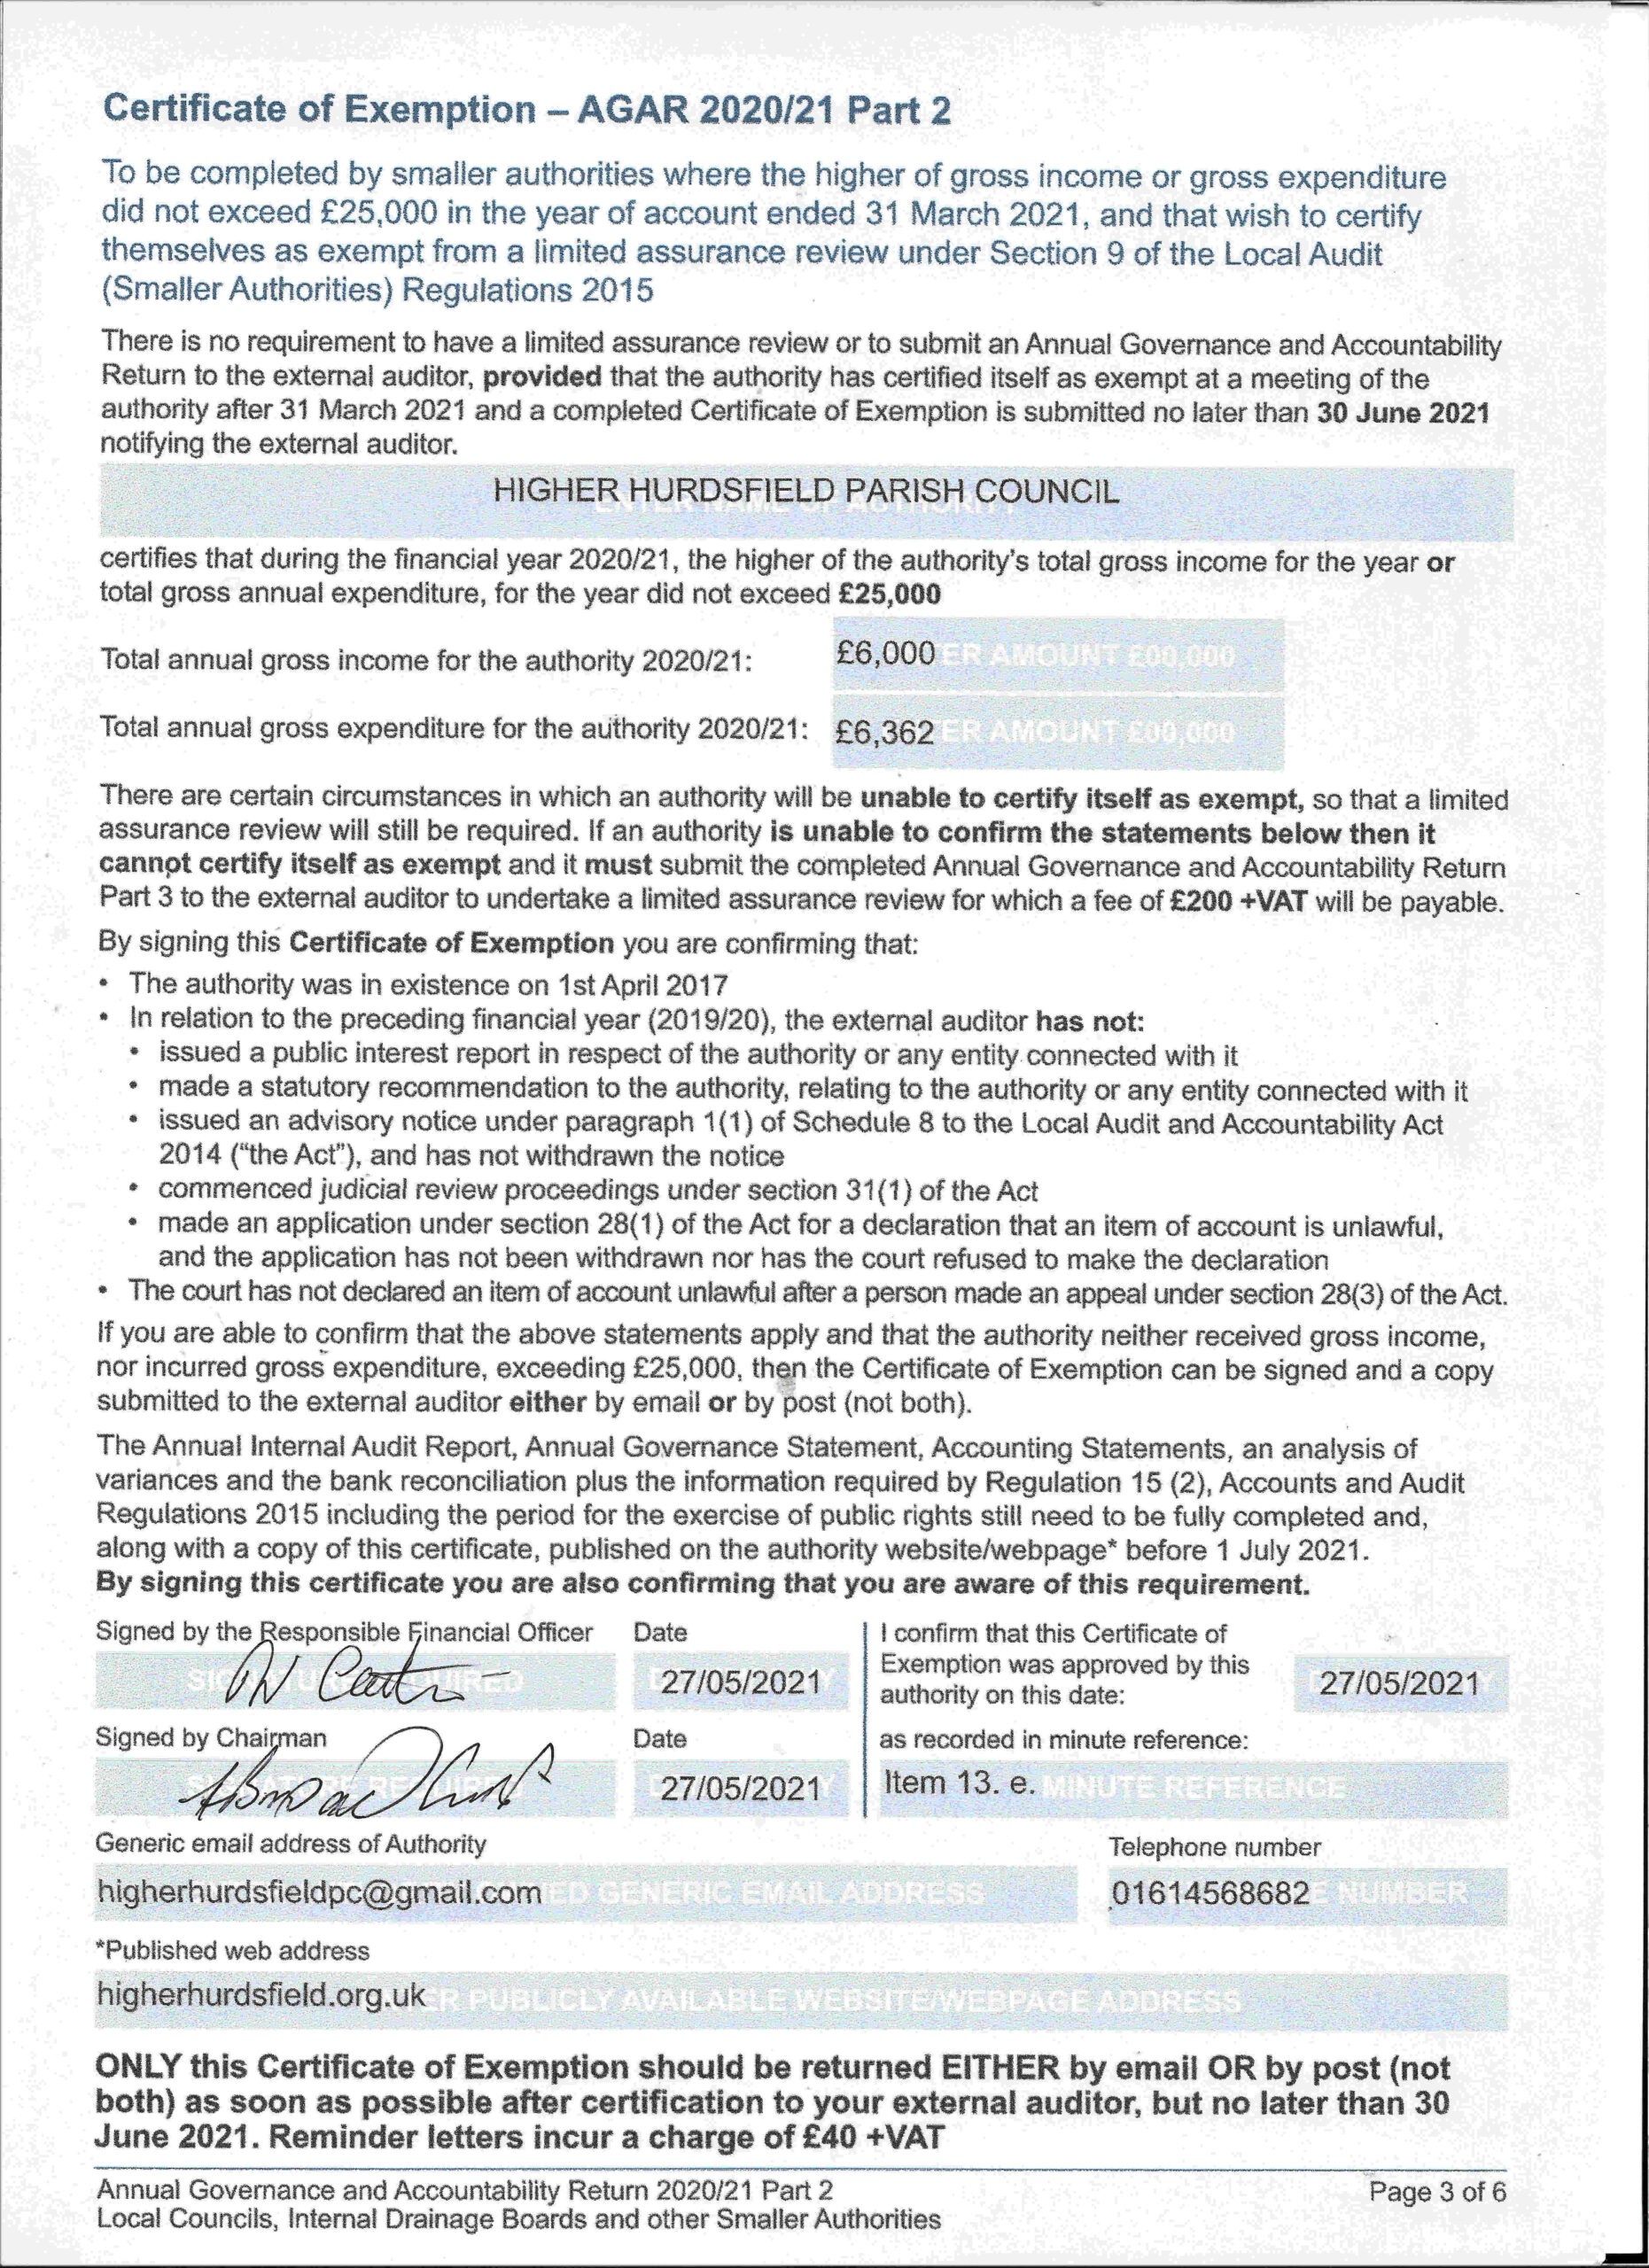 Certificate to allow exemption from a limited assurance review under section 9 of the Local Authority (Smaller Authorities) Regulations 2015 2015